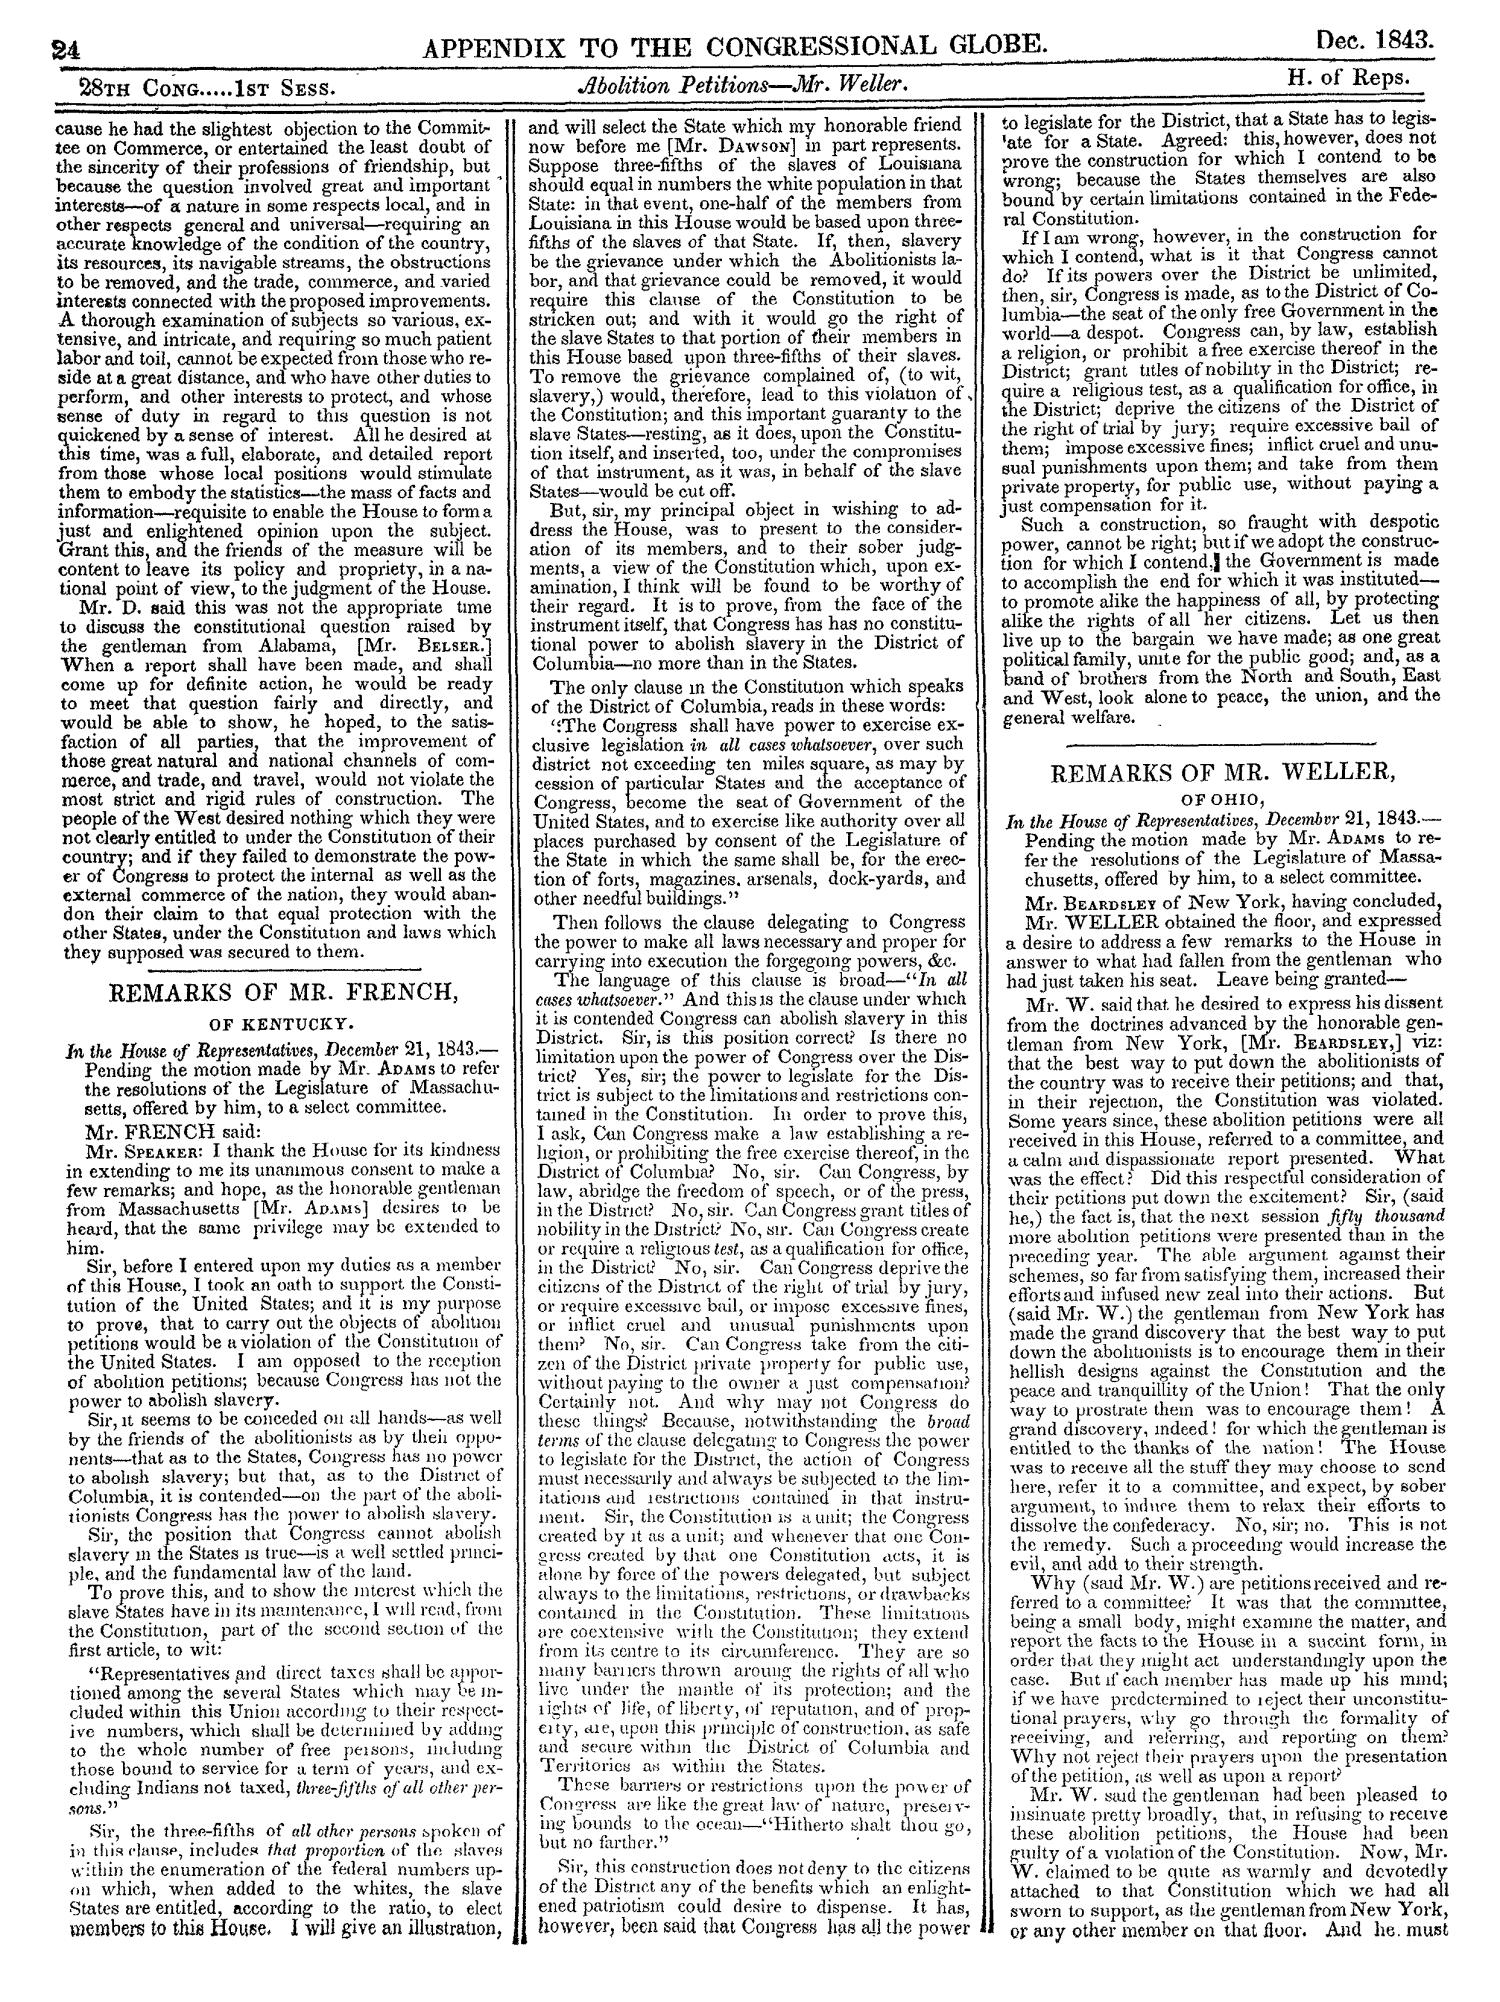 The Congressional Globe, Volume 13, Part 2: Twenty-Eighth Congress, First Session                                                                                                      24